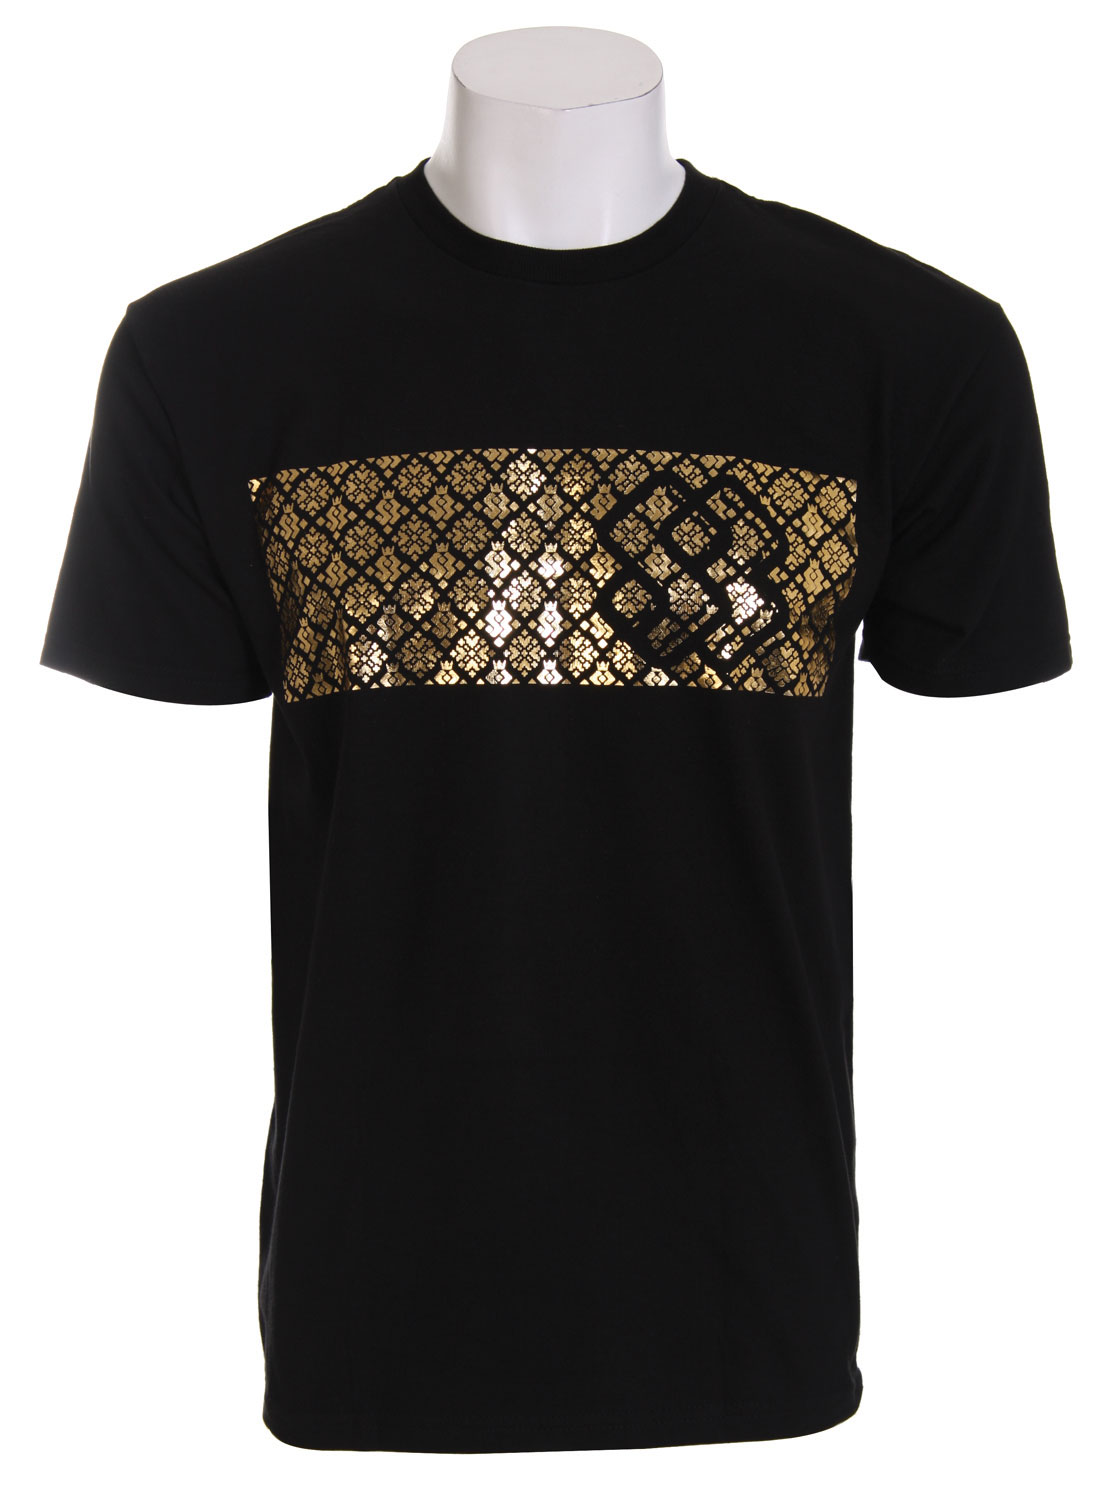 Do you like to have a little bling in your wardrobe? Do you hate being plain, and love the more flashier designs. Well if you like flashy designs and a little bling you will have no choice but to purchase this Special Blend Invader T-Shirt. The t-shirt has an overall great design. But what really makes the shirt what it is, is the great shiny gold design that stretches across the chest. It's a real eye catcher and should have no problem getting you the attention you love to have. For having a big shiny design on the chest, it is actually quite the comfortable shirt and has a great relax feel to it.Key Features of the Special Blend Invader T-Shirt White: 100% Cotton - $8.95